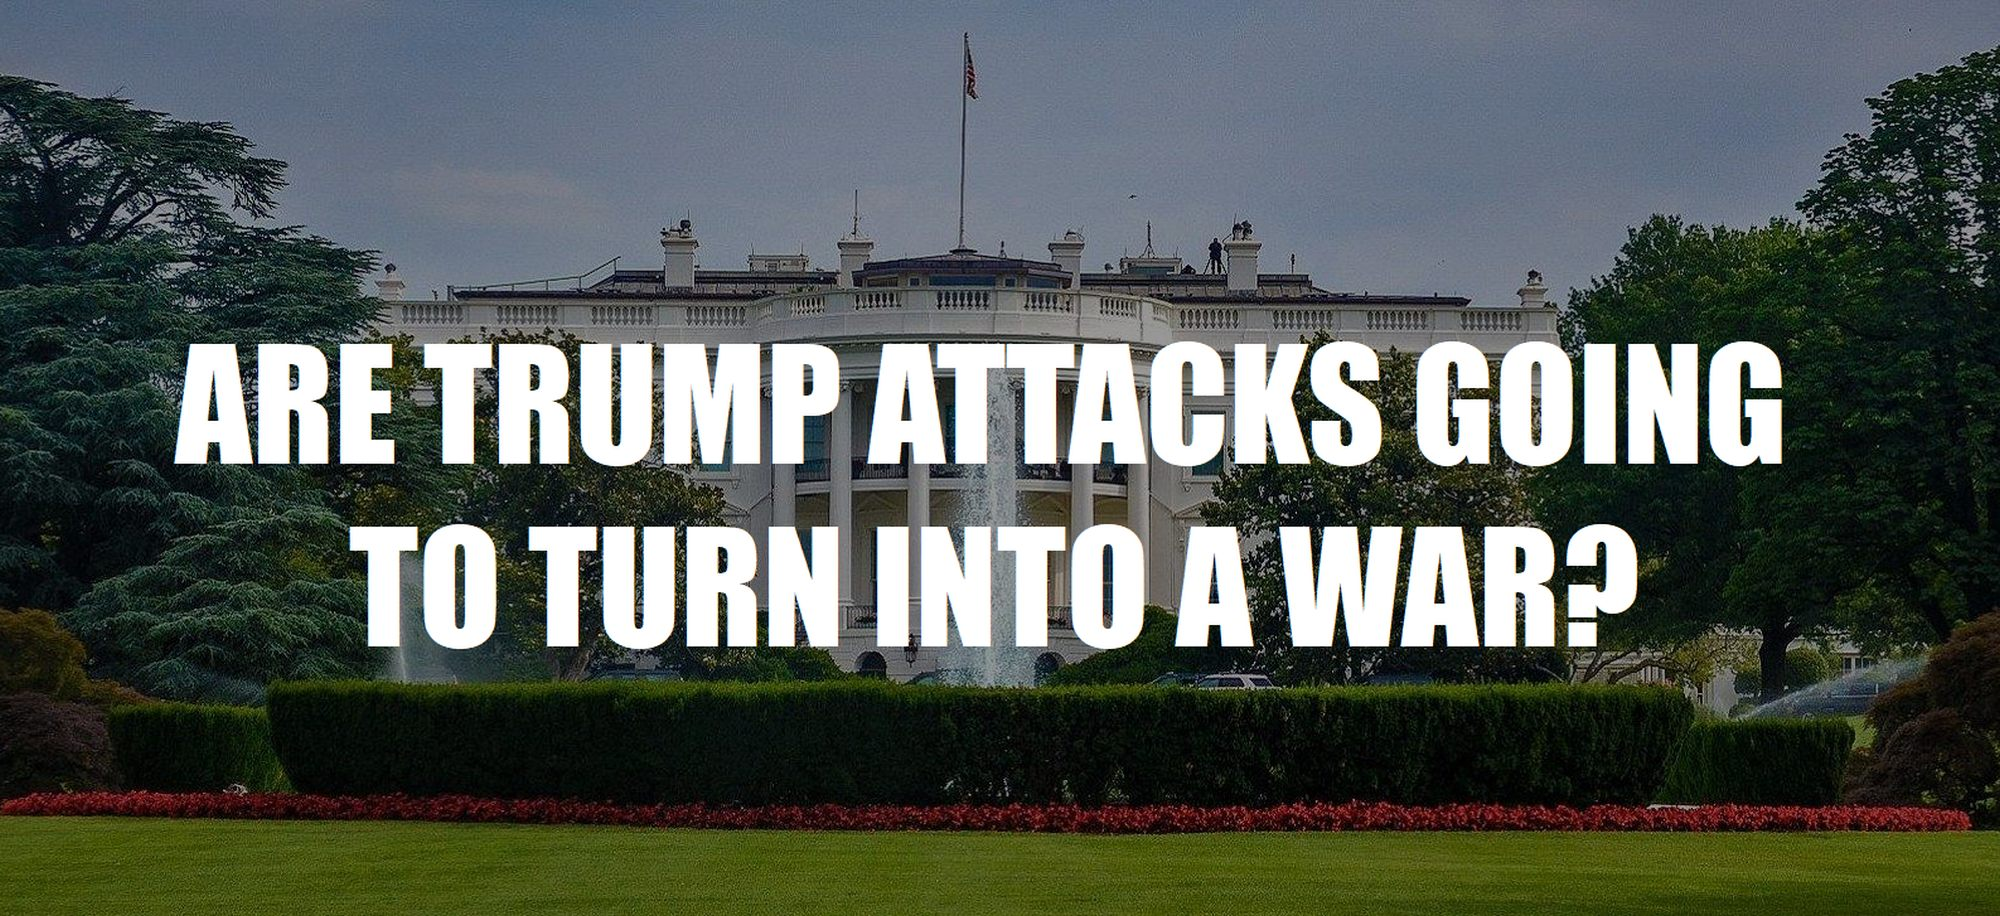 US Capitol setting where it all started depicts question are Trump attacks going to turn into a war and the question why, when and where are supporters planning new attacks in US cities, states Capitol cities and towns